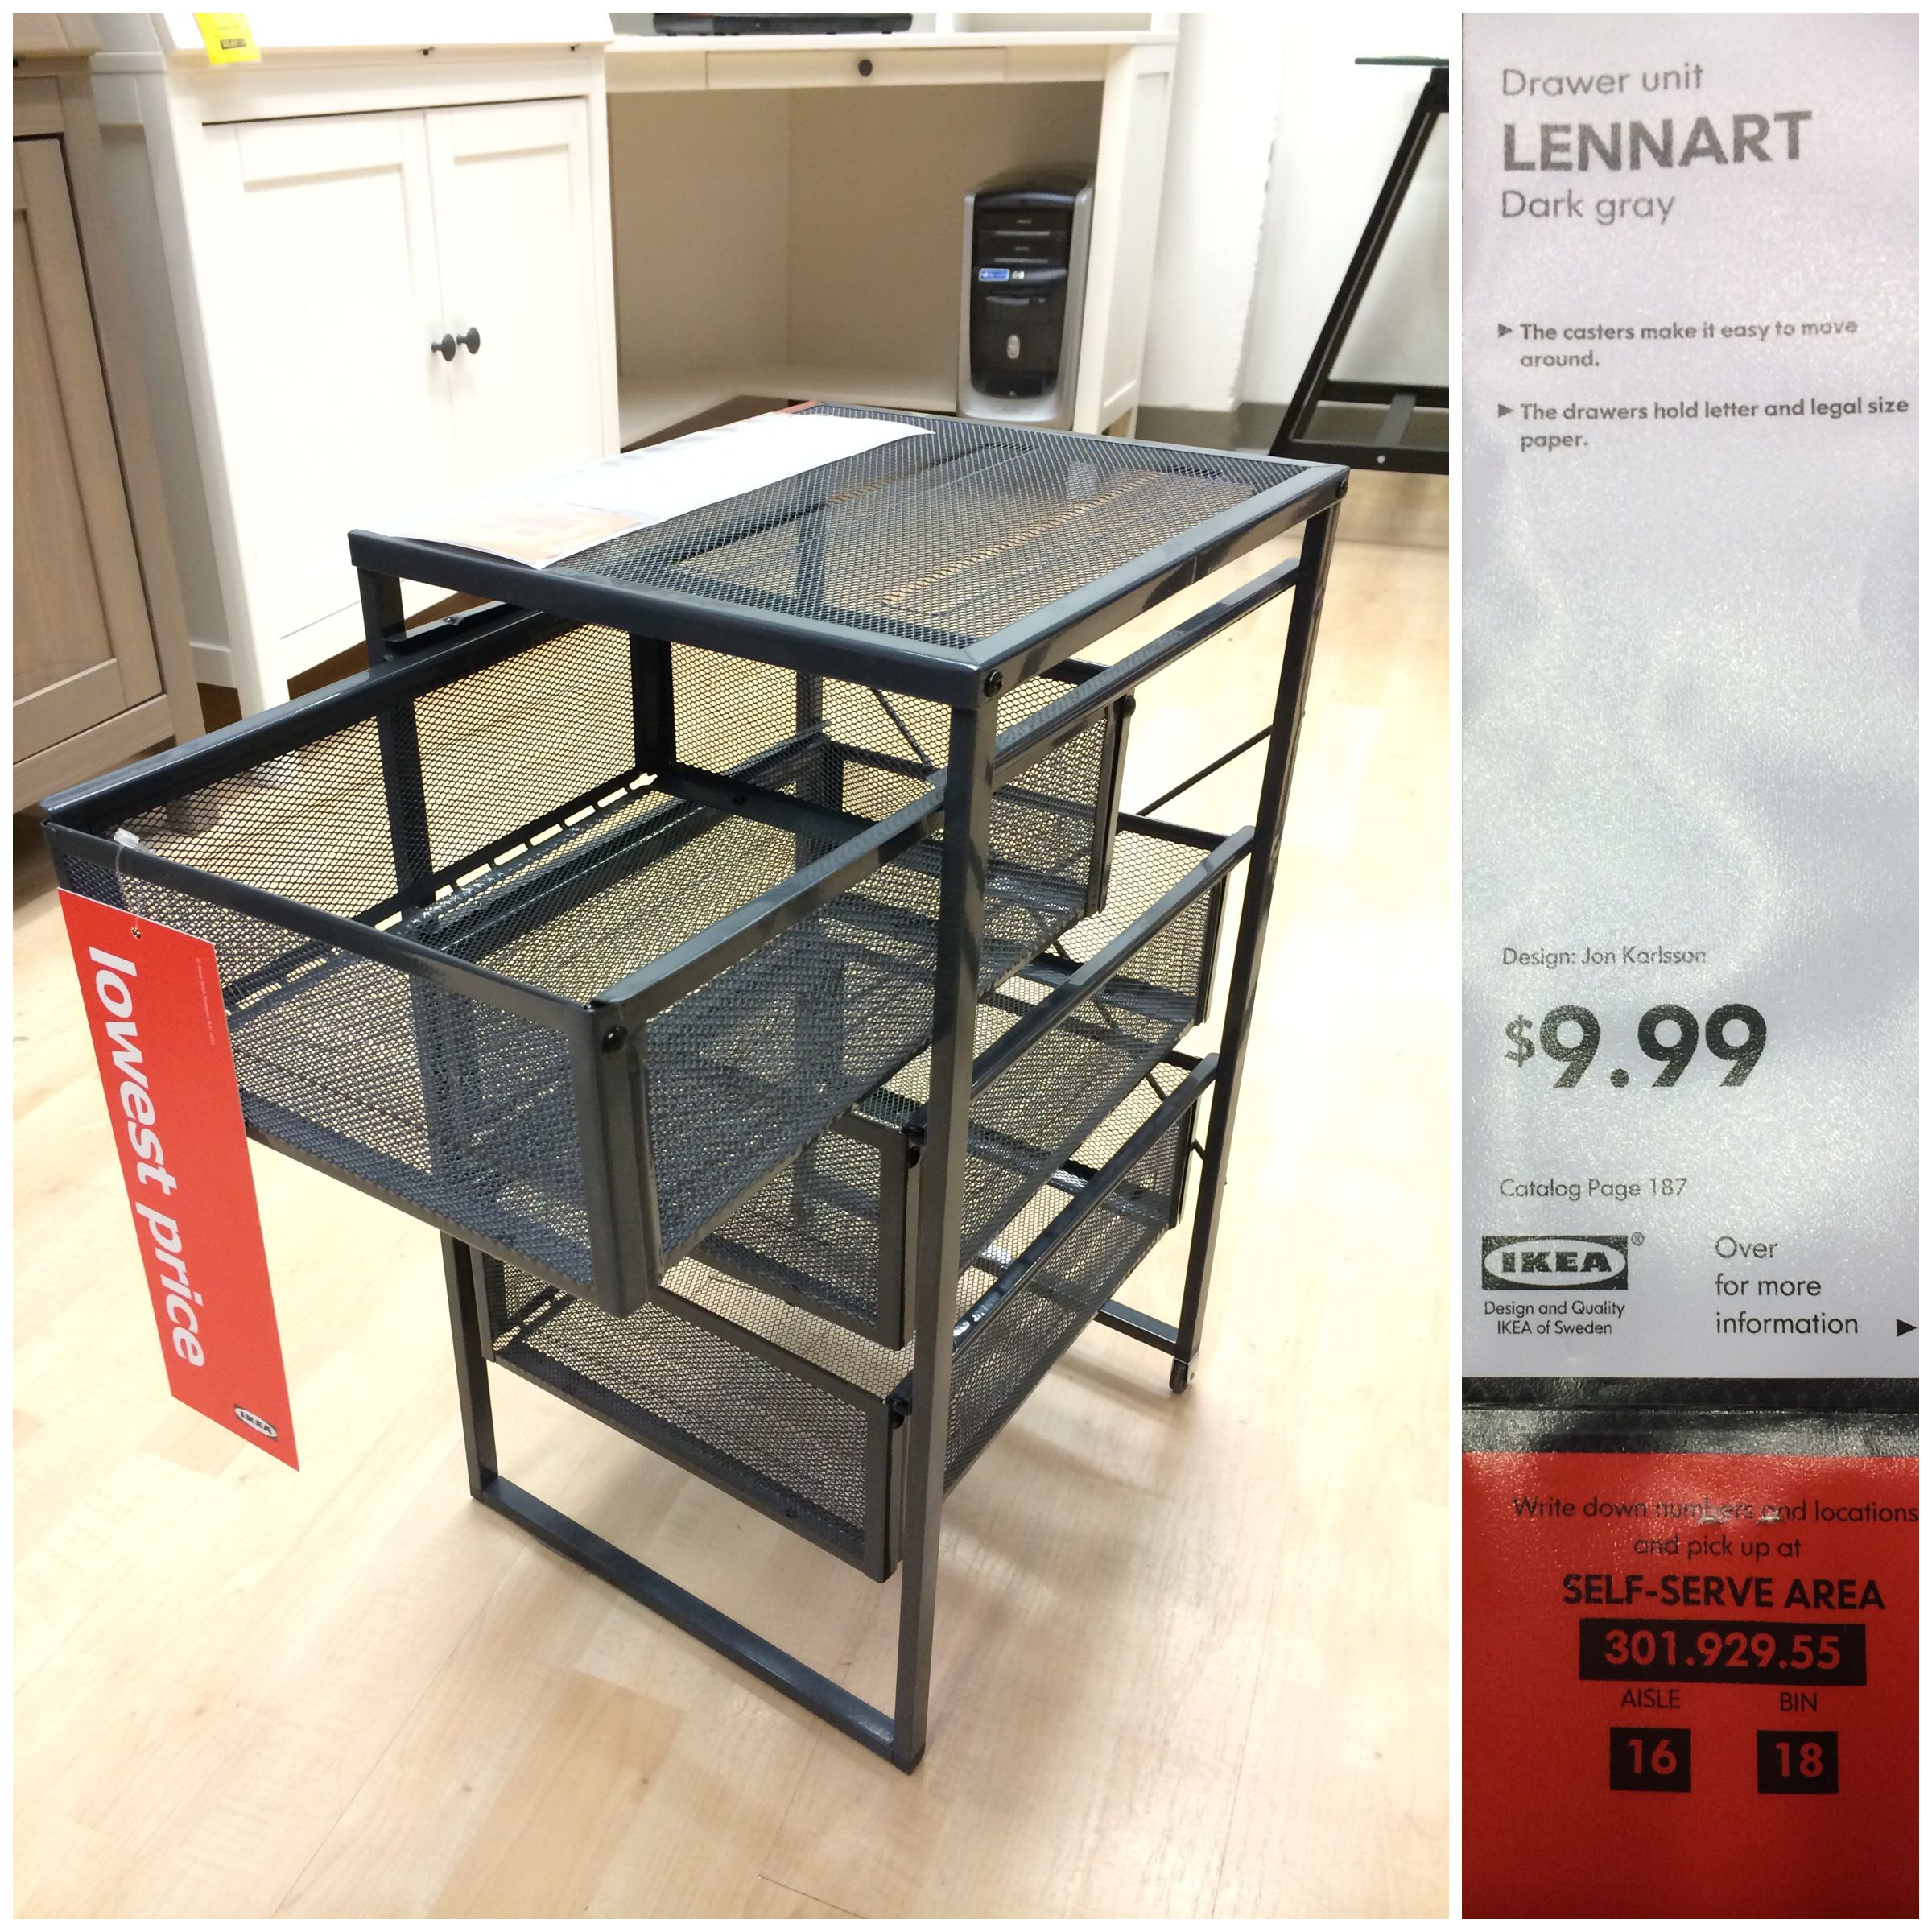 Drawer unit Lennart dark gray $9 99 with casters